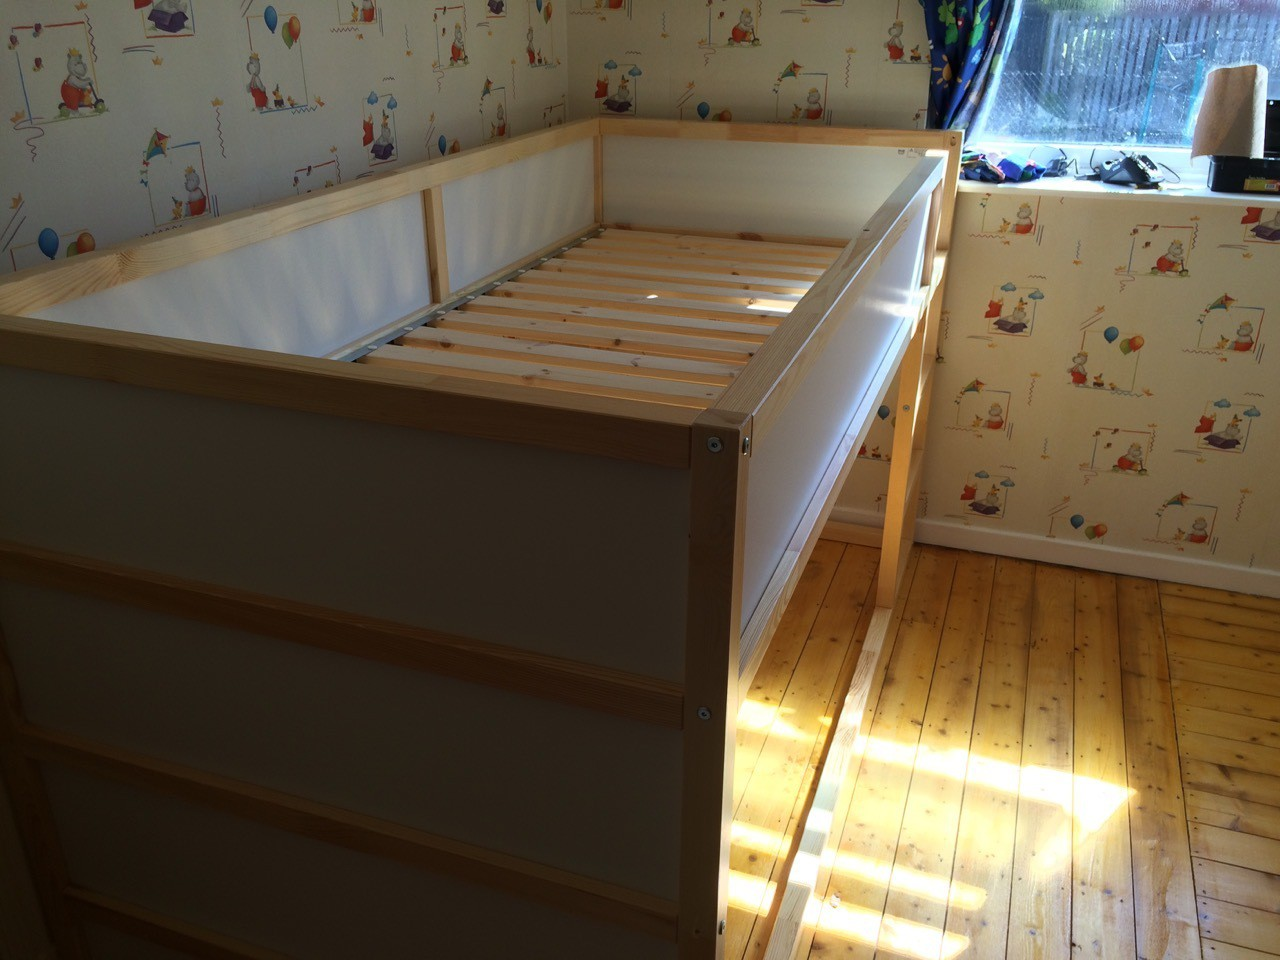 Ikea Malm Frisiertisch Aufbau ~ Our  Ikea Hack  toddler friendly bunkbed  Kura, Kritter & Trof